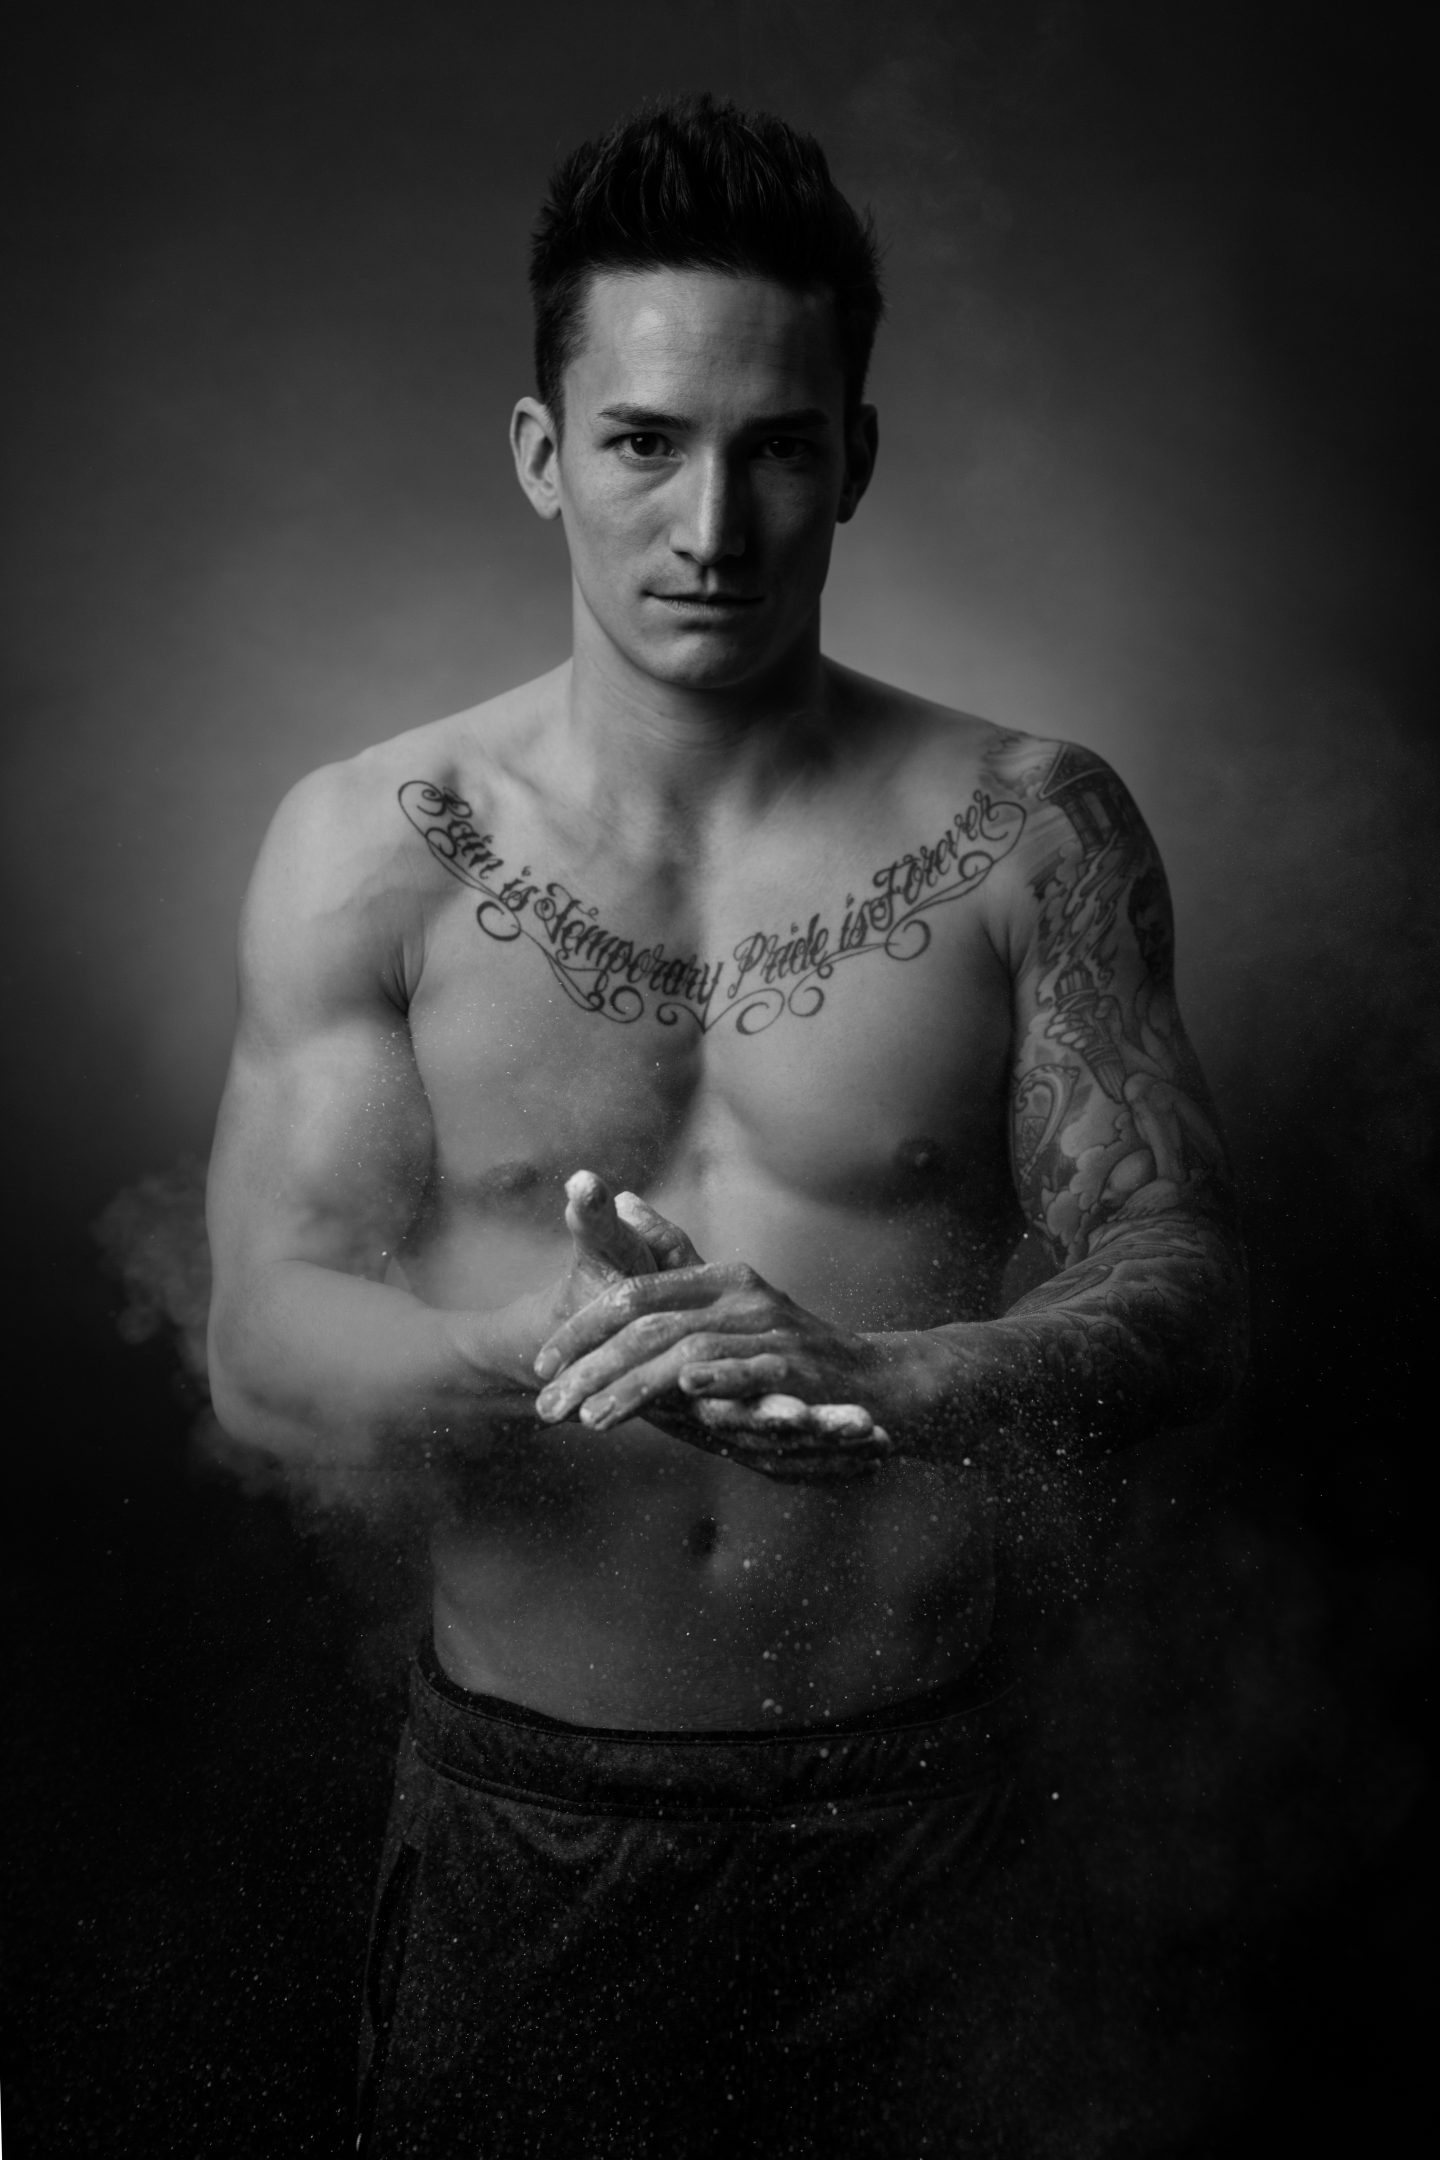 Gymnast Marcel Nguyen is preparing his hands with chalk. Preparation; Gymnastics; Competition; motivation; ambition; Olympic Games; adidas; Reebok; GamePlan A